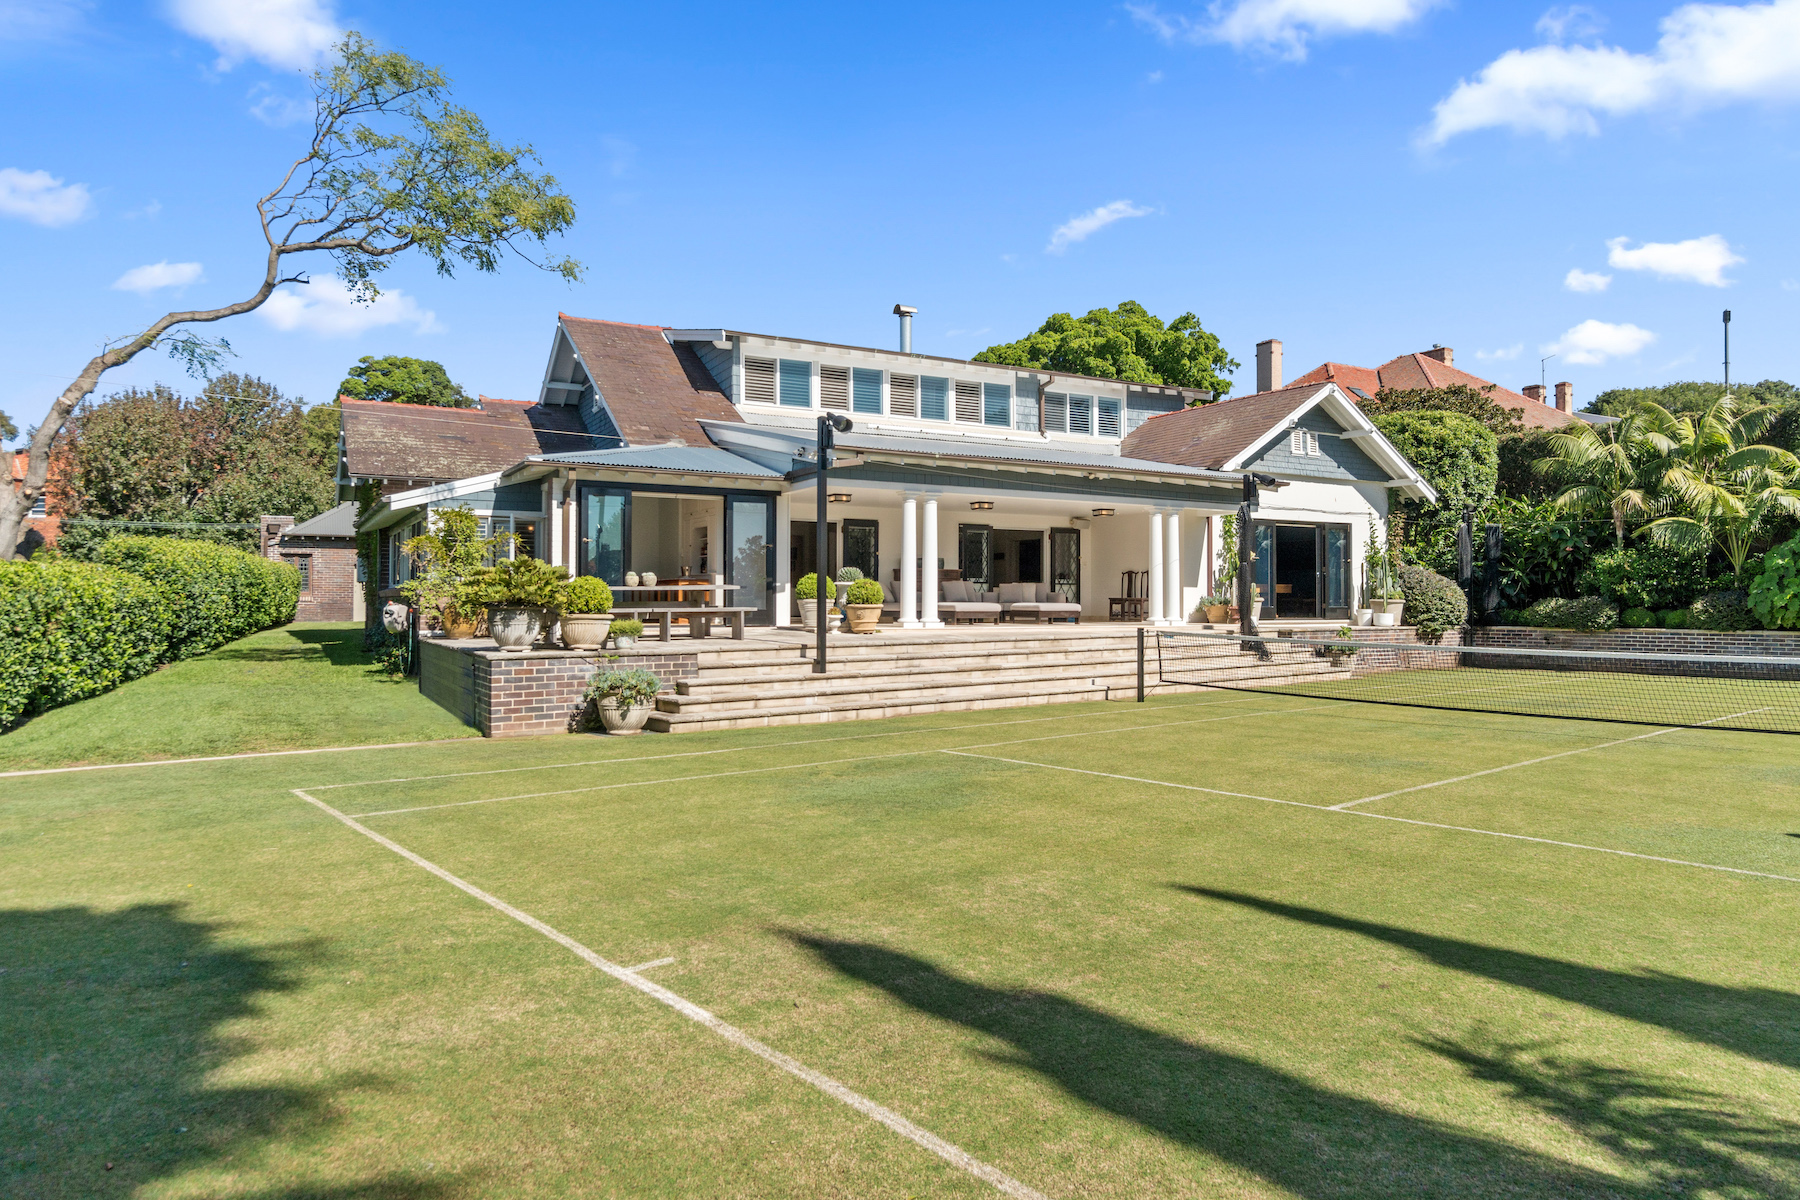 Other Residential for Sale at 18 Drumalbyn Road, Bellevue Hill 18 Drumalbyn Road Sydney, New South Wales 2023 Australia